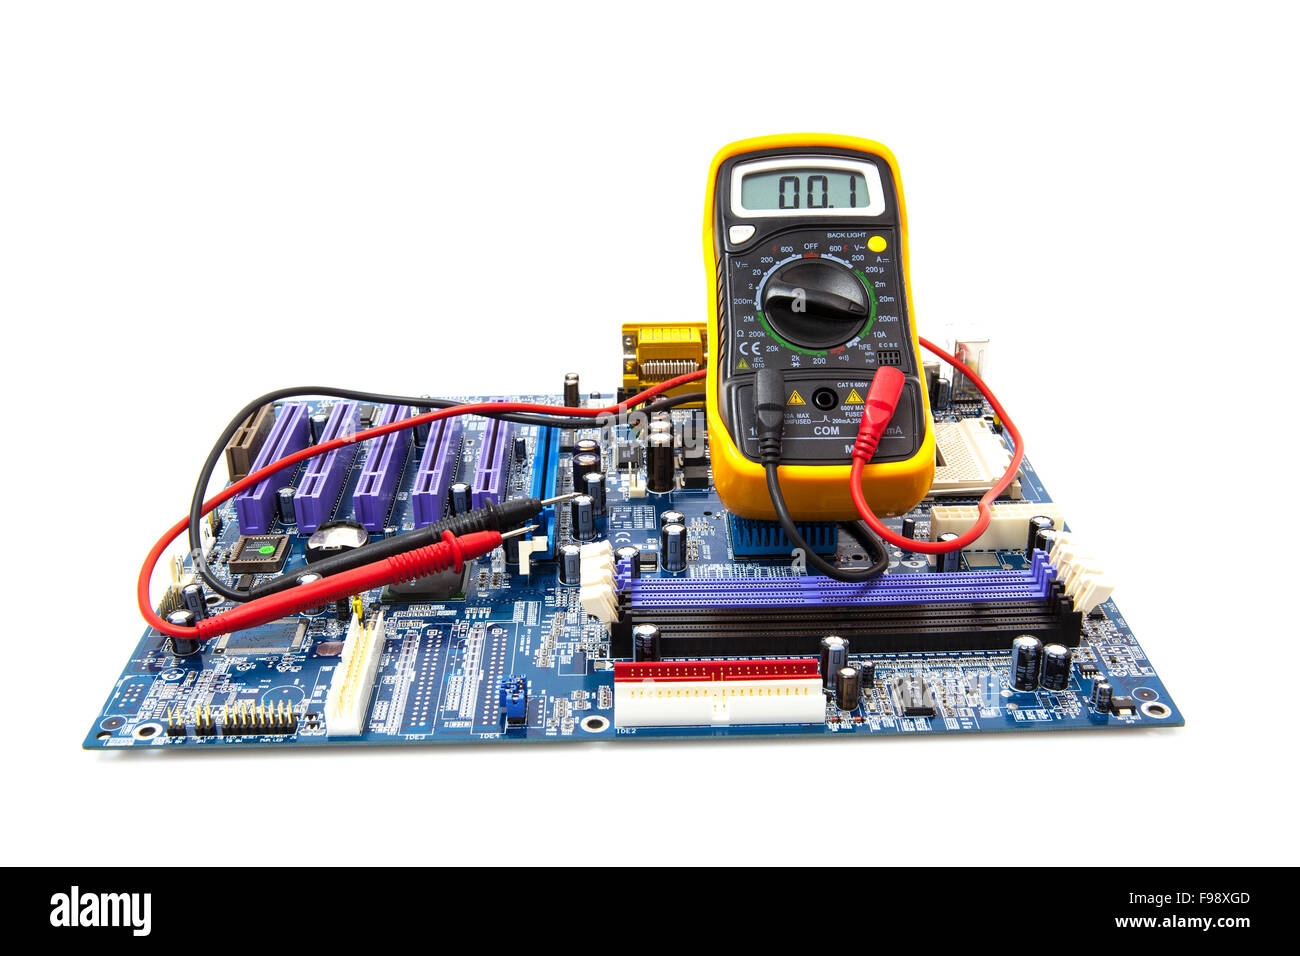 Multimeter and computer circuit board on white background - Stock Image